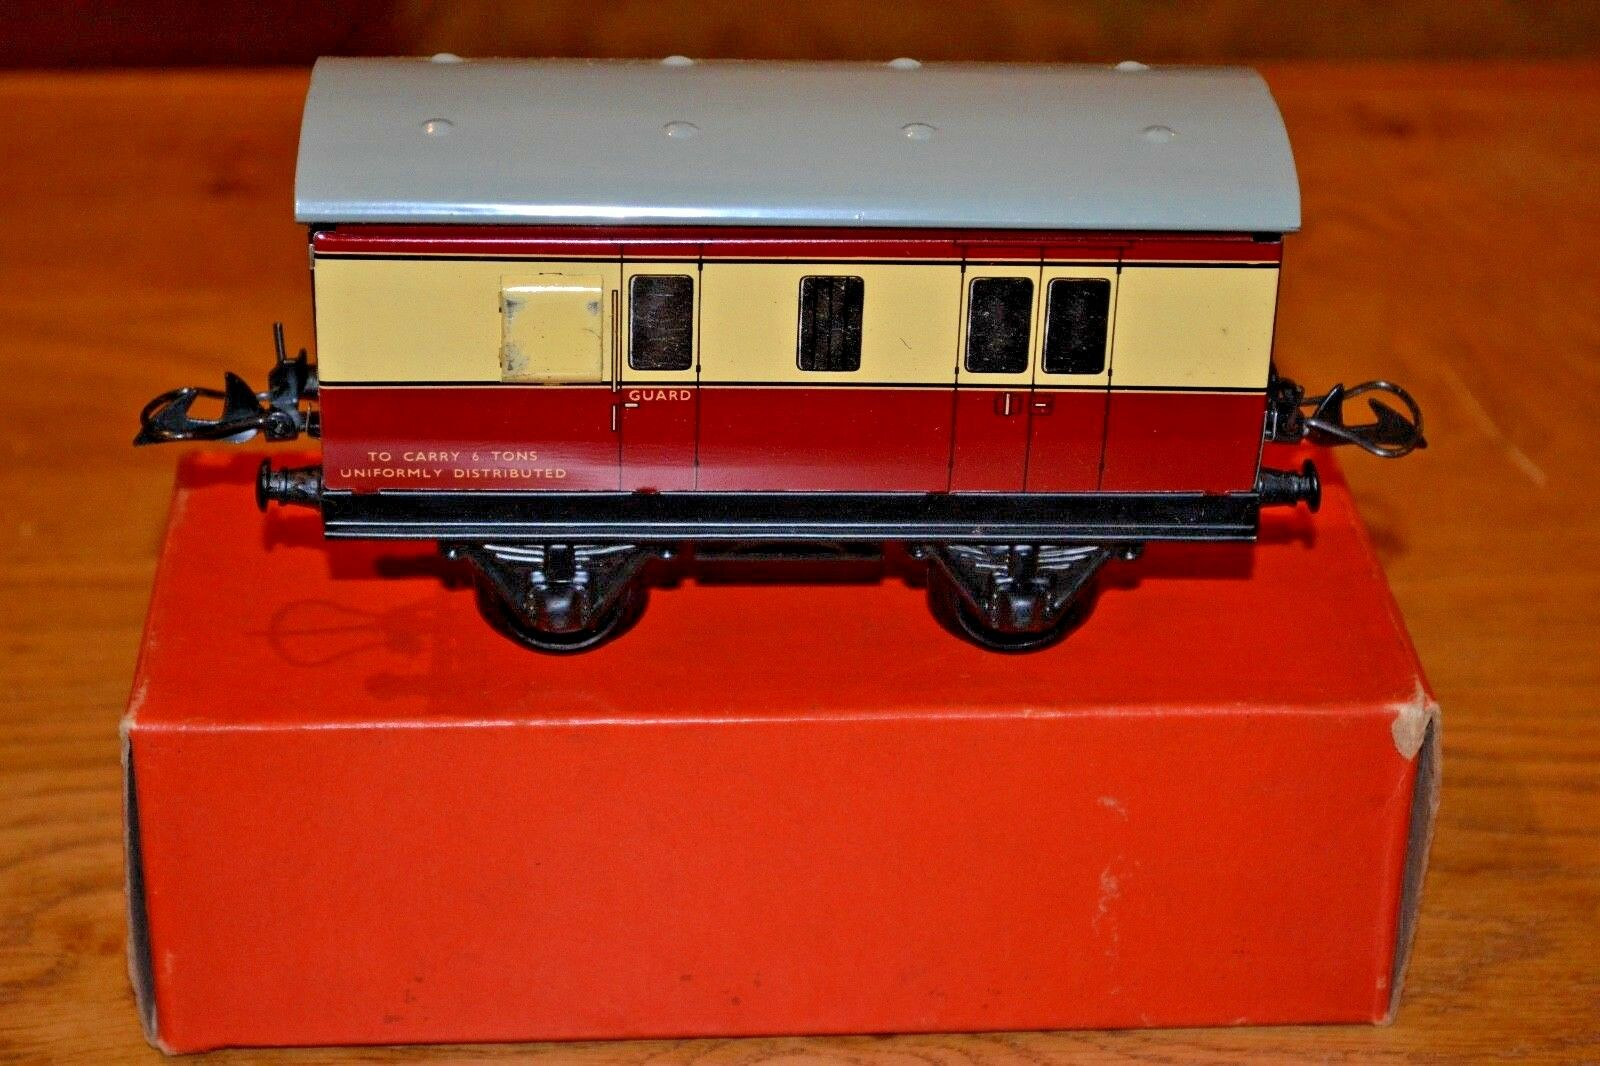 Hornby Series O Gauge; No. 51 Passenger Brake Van Original Box; Railway Lamp